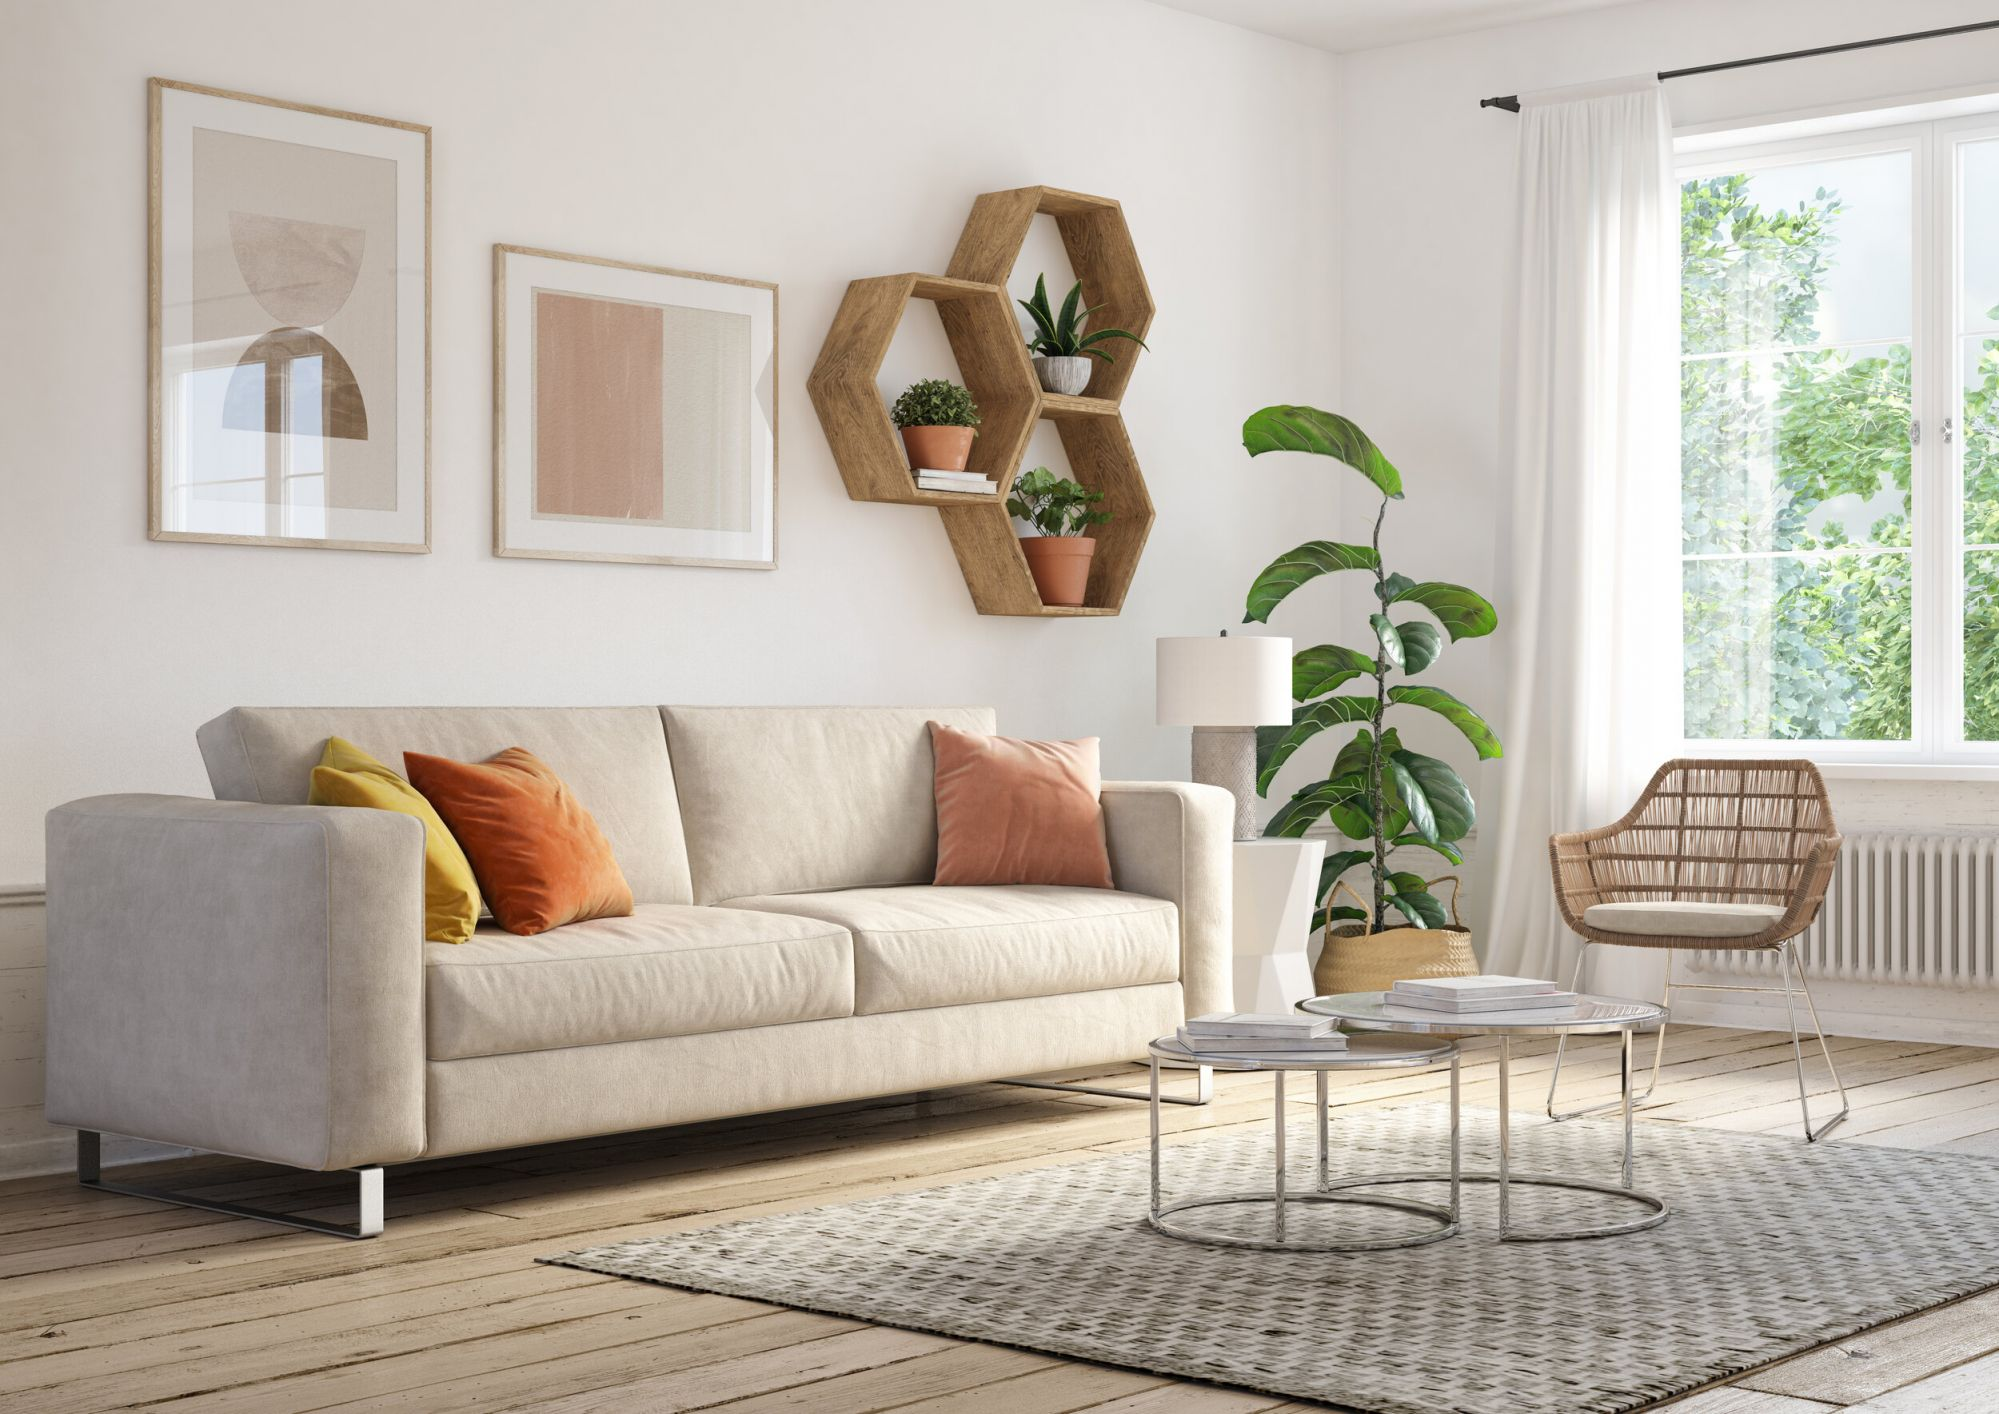 A Fresh Start: 7 Ways To Spring Clean Your Home